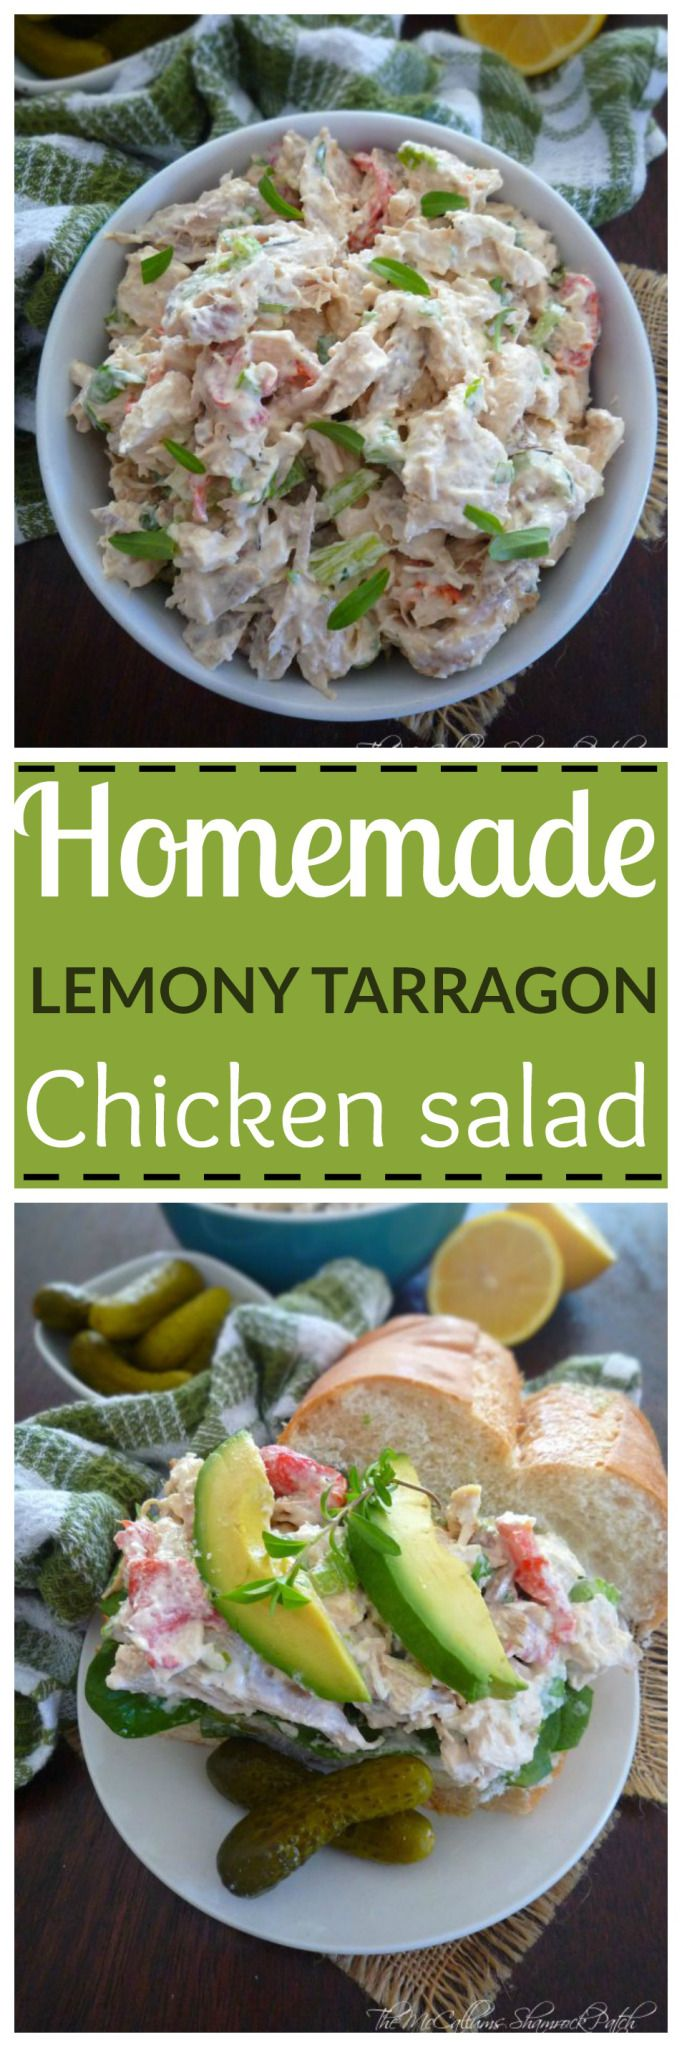 Lemony Tarragon Chicken Salad it has a clean fresh taste, with a positive upside; Lemony Tarragon Chicken Salad is so easy to make in a matter of minutes; combining  diced chicken breast meat, fres…